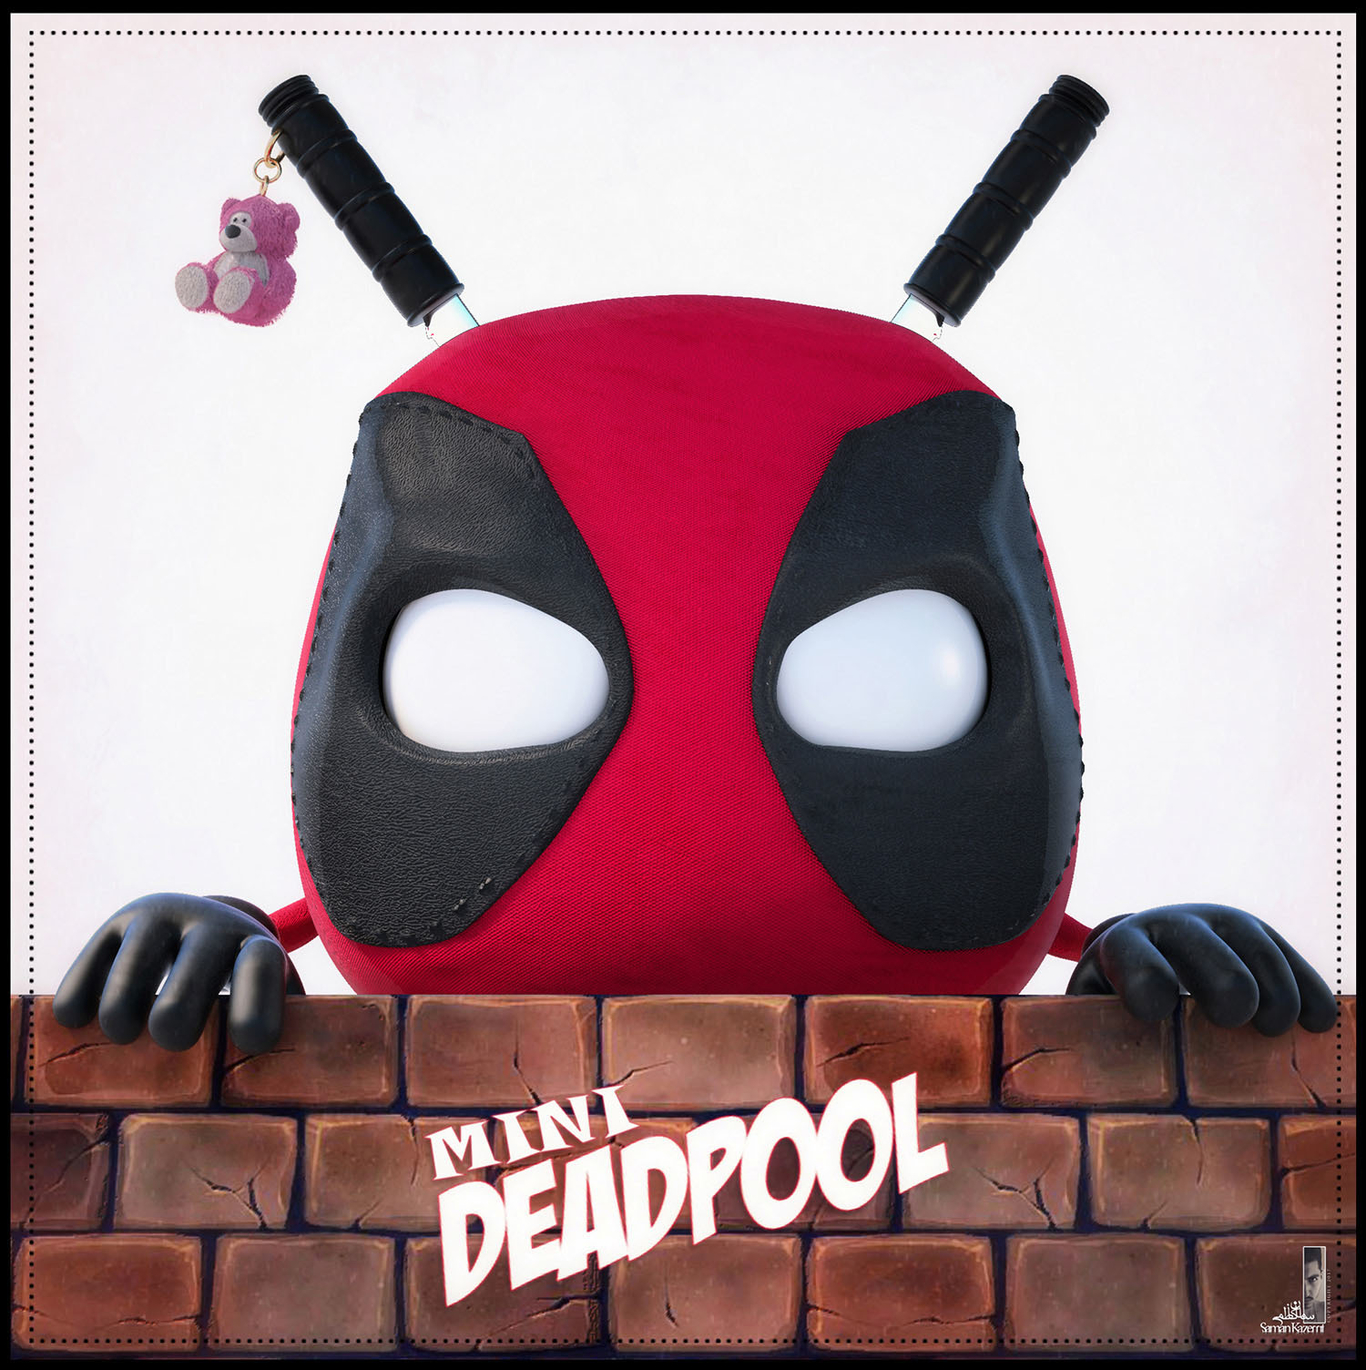 Samankazemi mini deadpool 1 58194062 wxq2